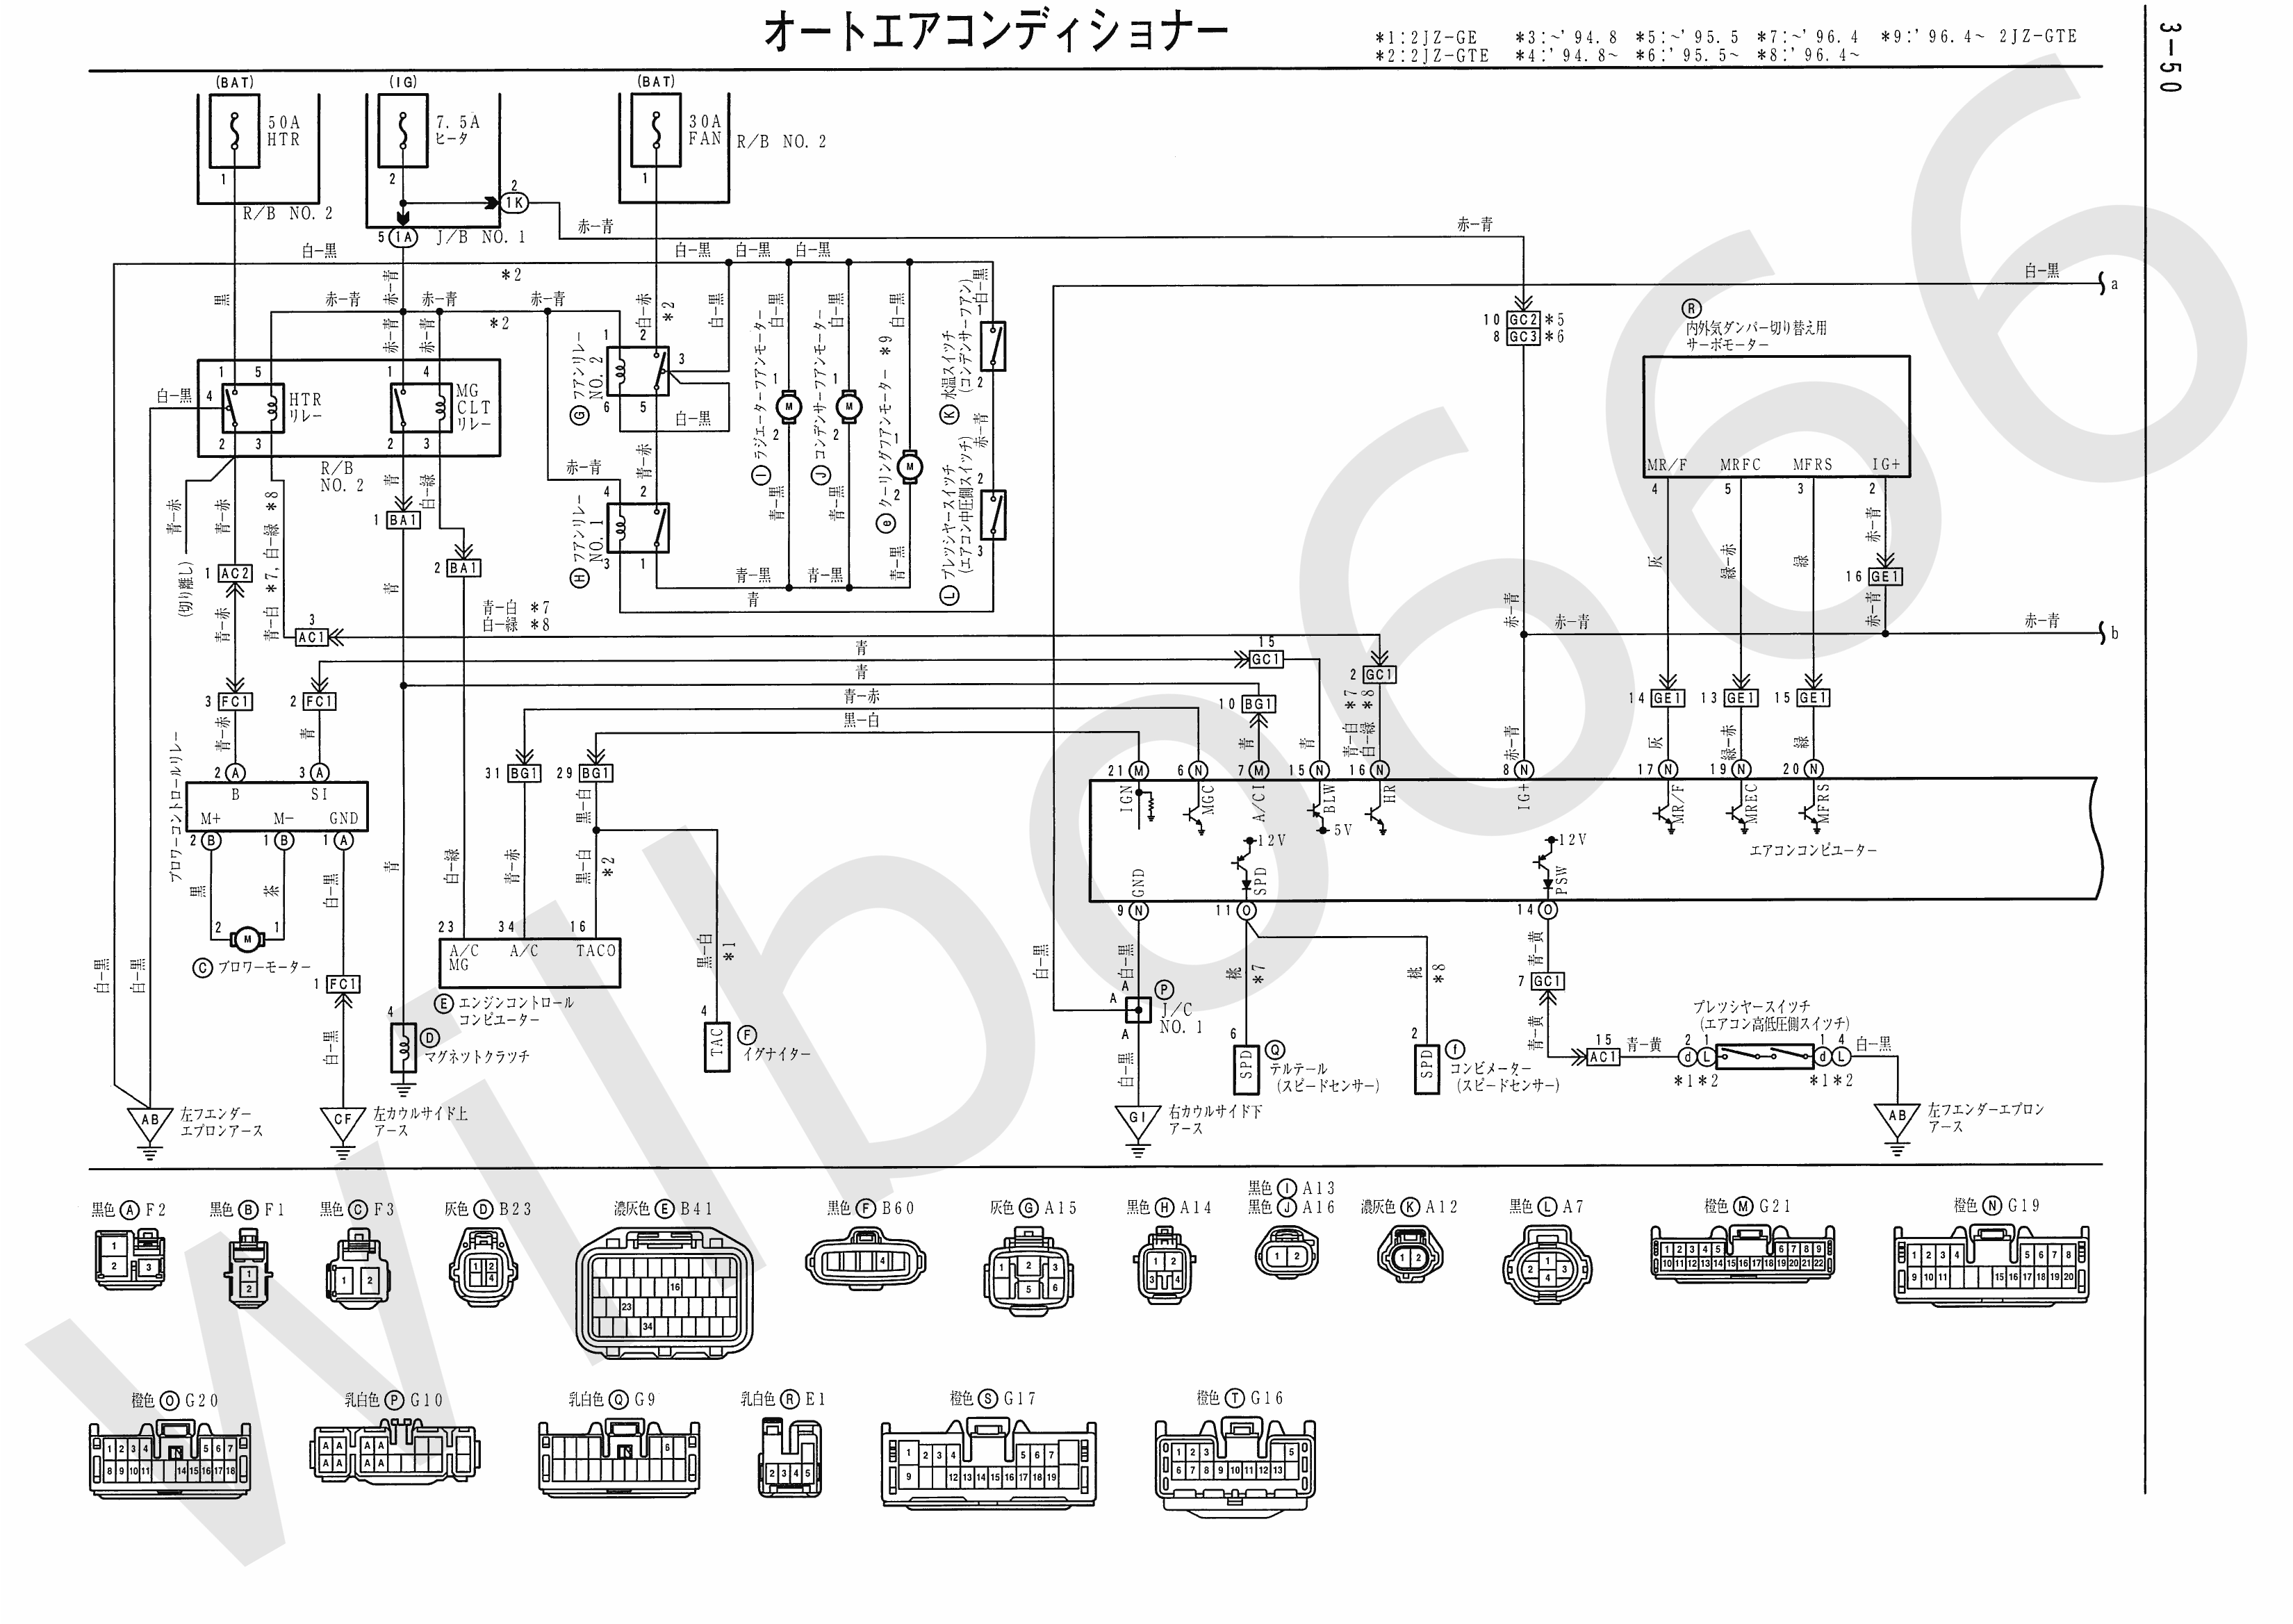 JZA80 Electrical Wiring Diagram 6742505 3 50 wilbo666 2jz ge jza80 supra engine wiring 1995 lexus sc300 wiring diagrams at n-0.co